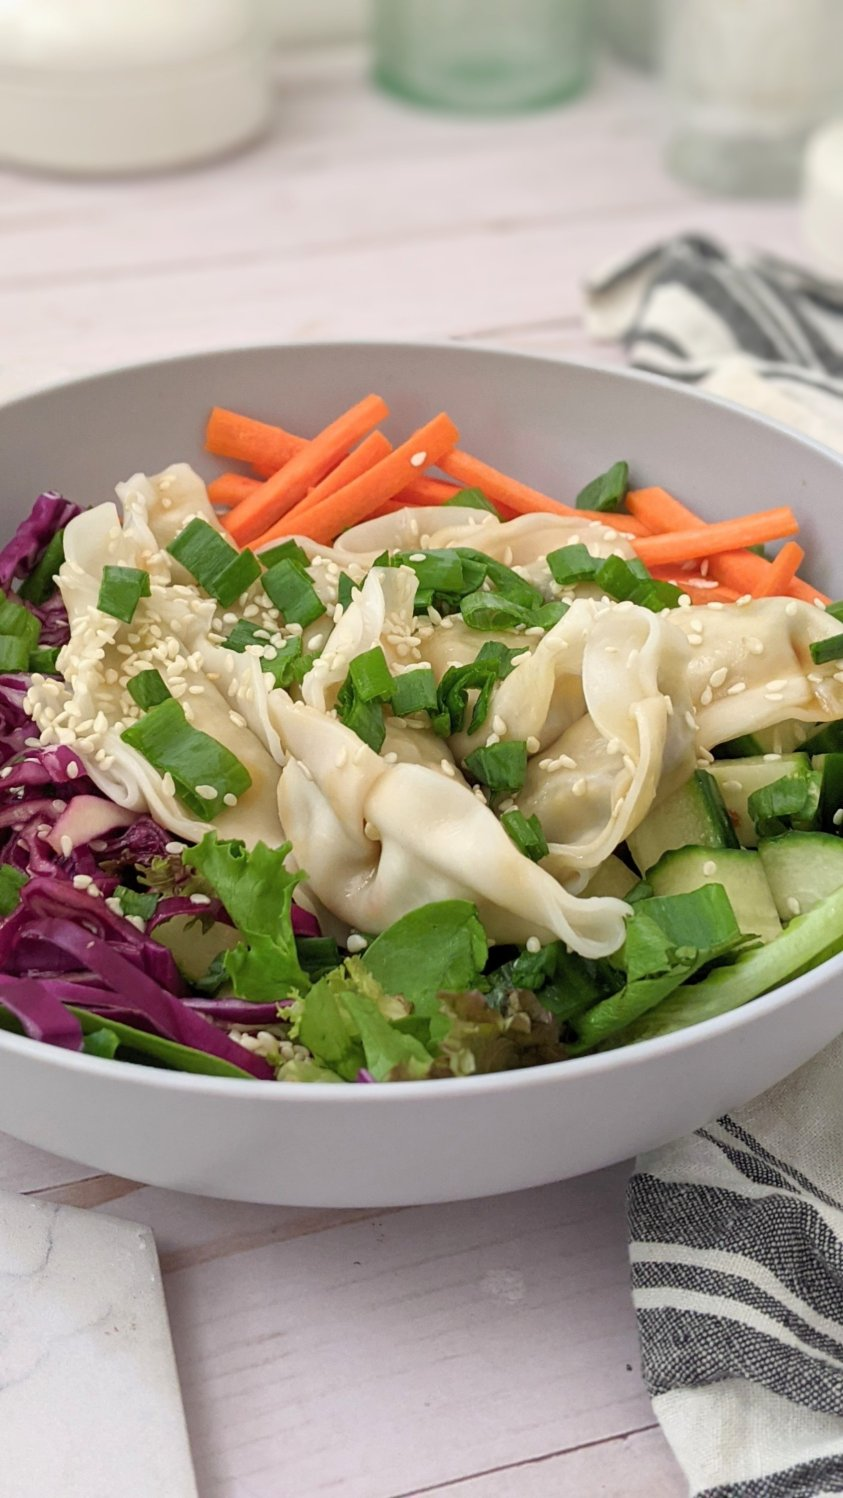 plant based dumpling salad recipe salads with pot stickers how to eat leftover pot stickers in a salad vegan gluten free filling lunch ideas for work or school